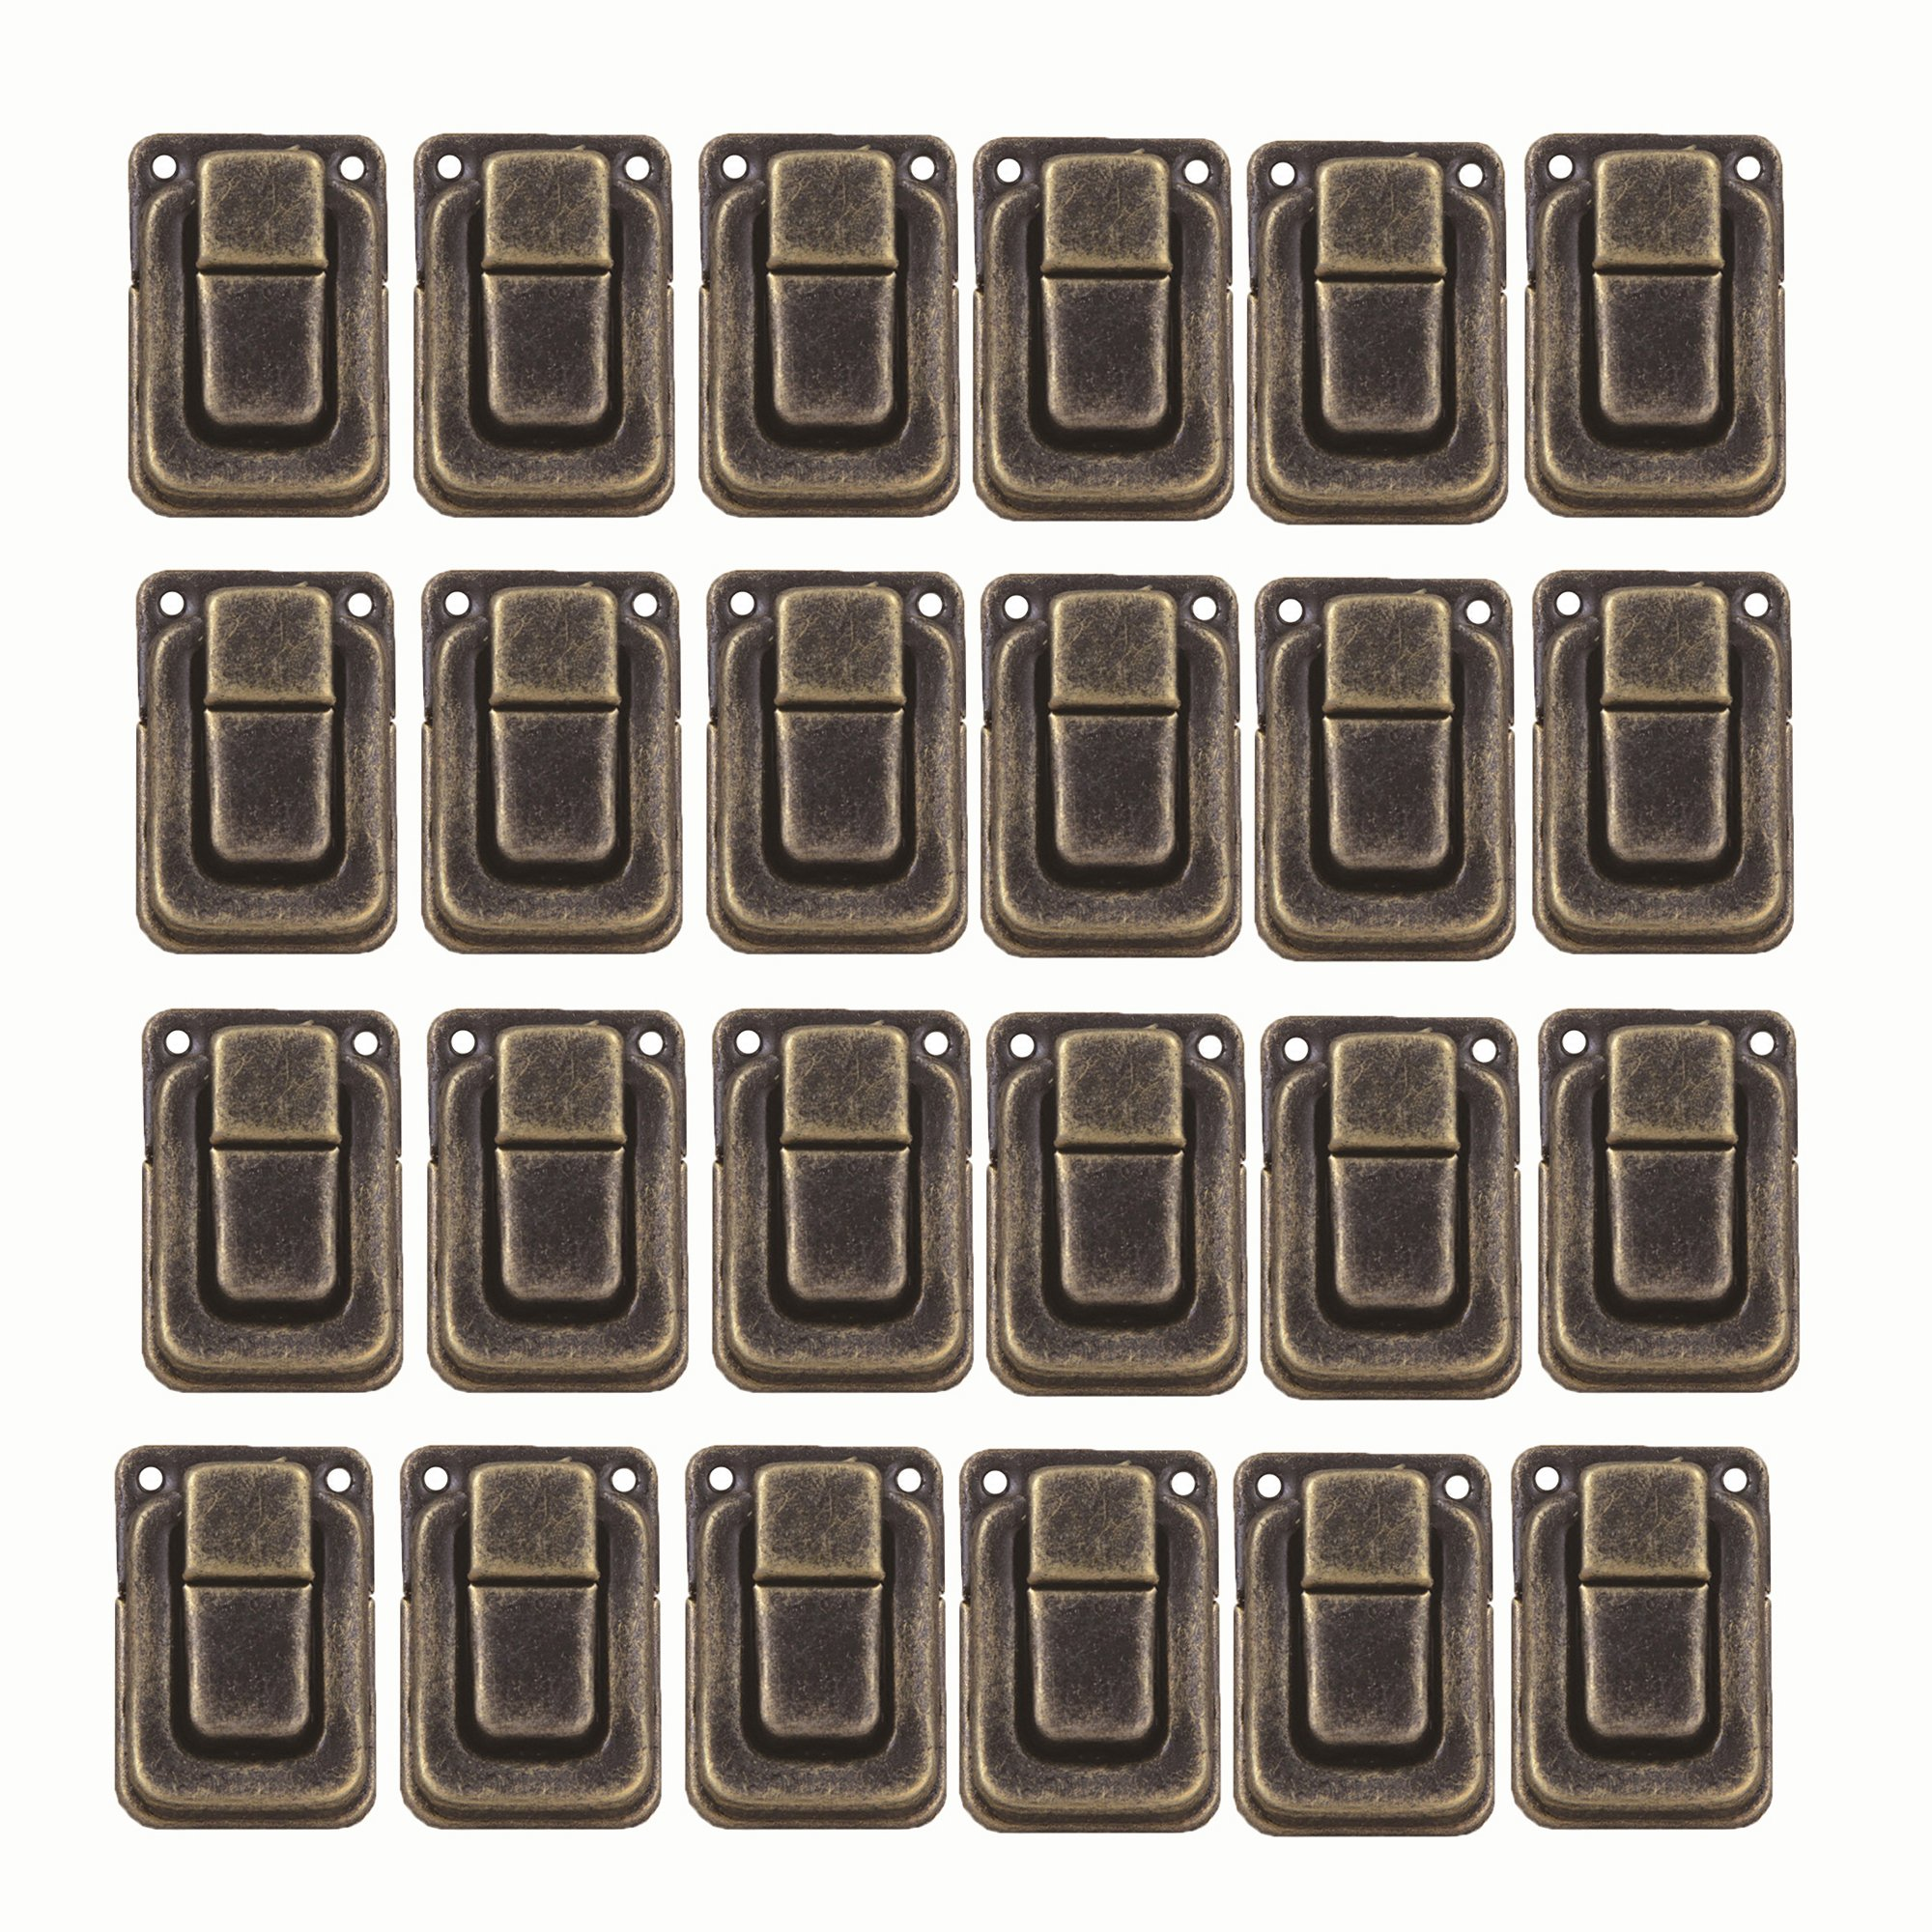 Antrader 24pcs Clasp Latch Lock Mini Hasp for Toolbox Gift Box Suitcase 1.5'' x 1'' x 0.35'' with Screws (Bronze Tone)